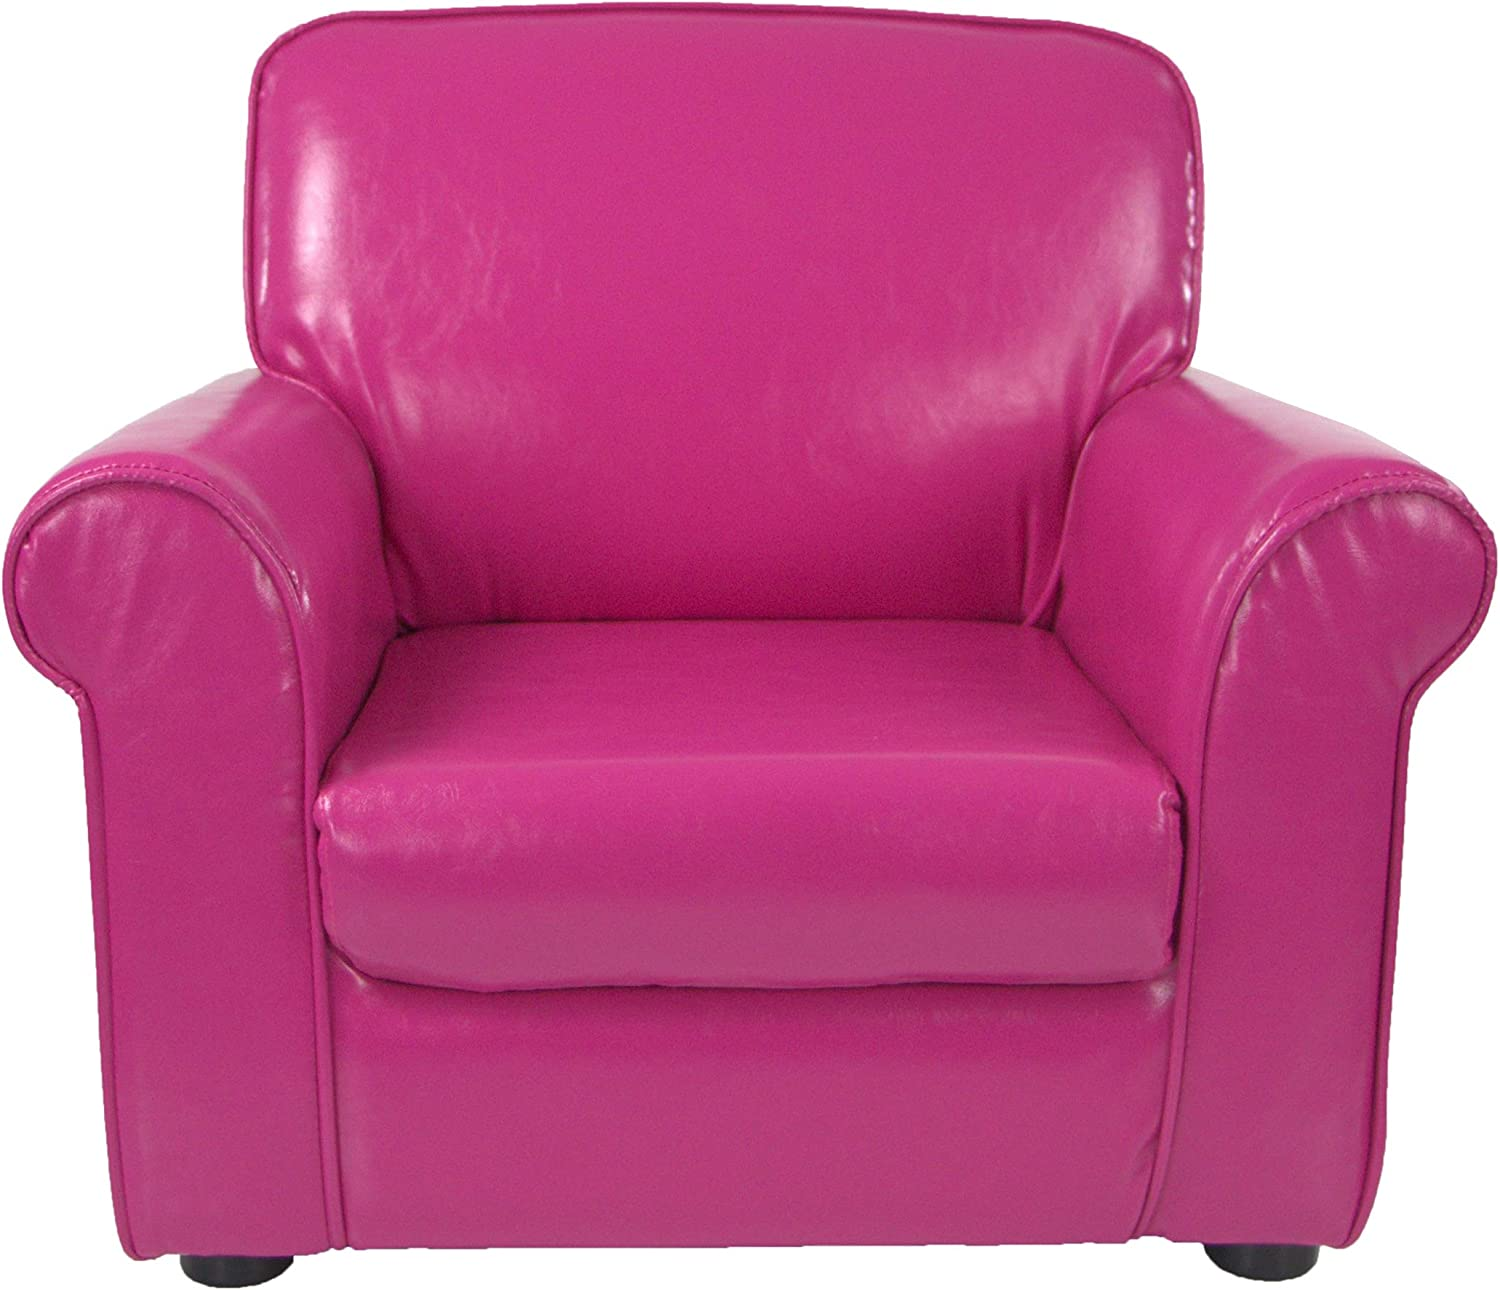 Critter Sitters Pink 21 キャンペーンもお見逃しなく Faux Chair Children's Leather 開店記念セール Mini